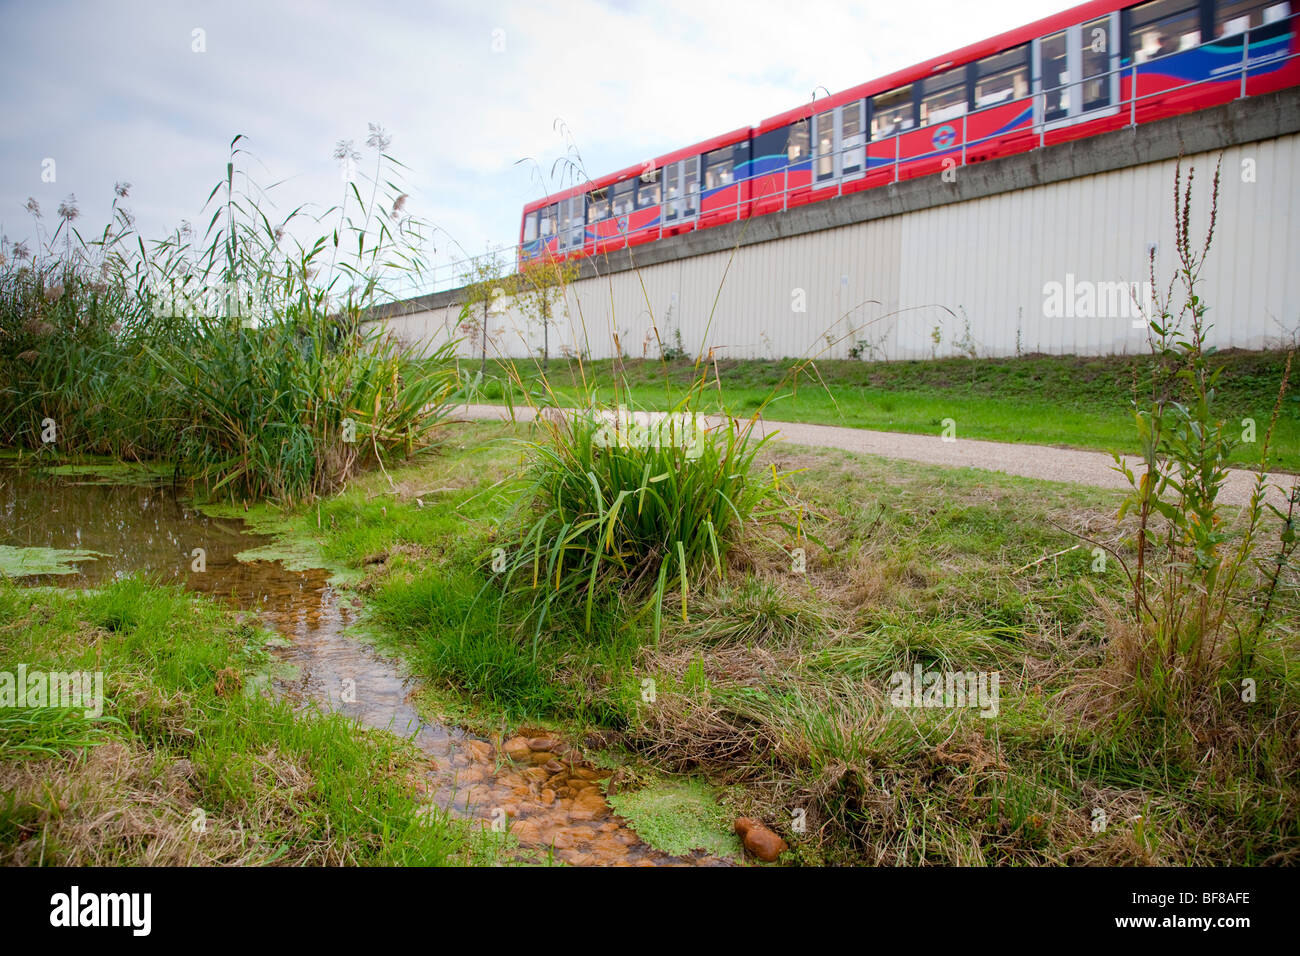 Docklands light railway DLR train by Bow Creek Ecology Park, a small open space in Newham in London - Stock Image